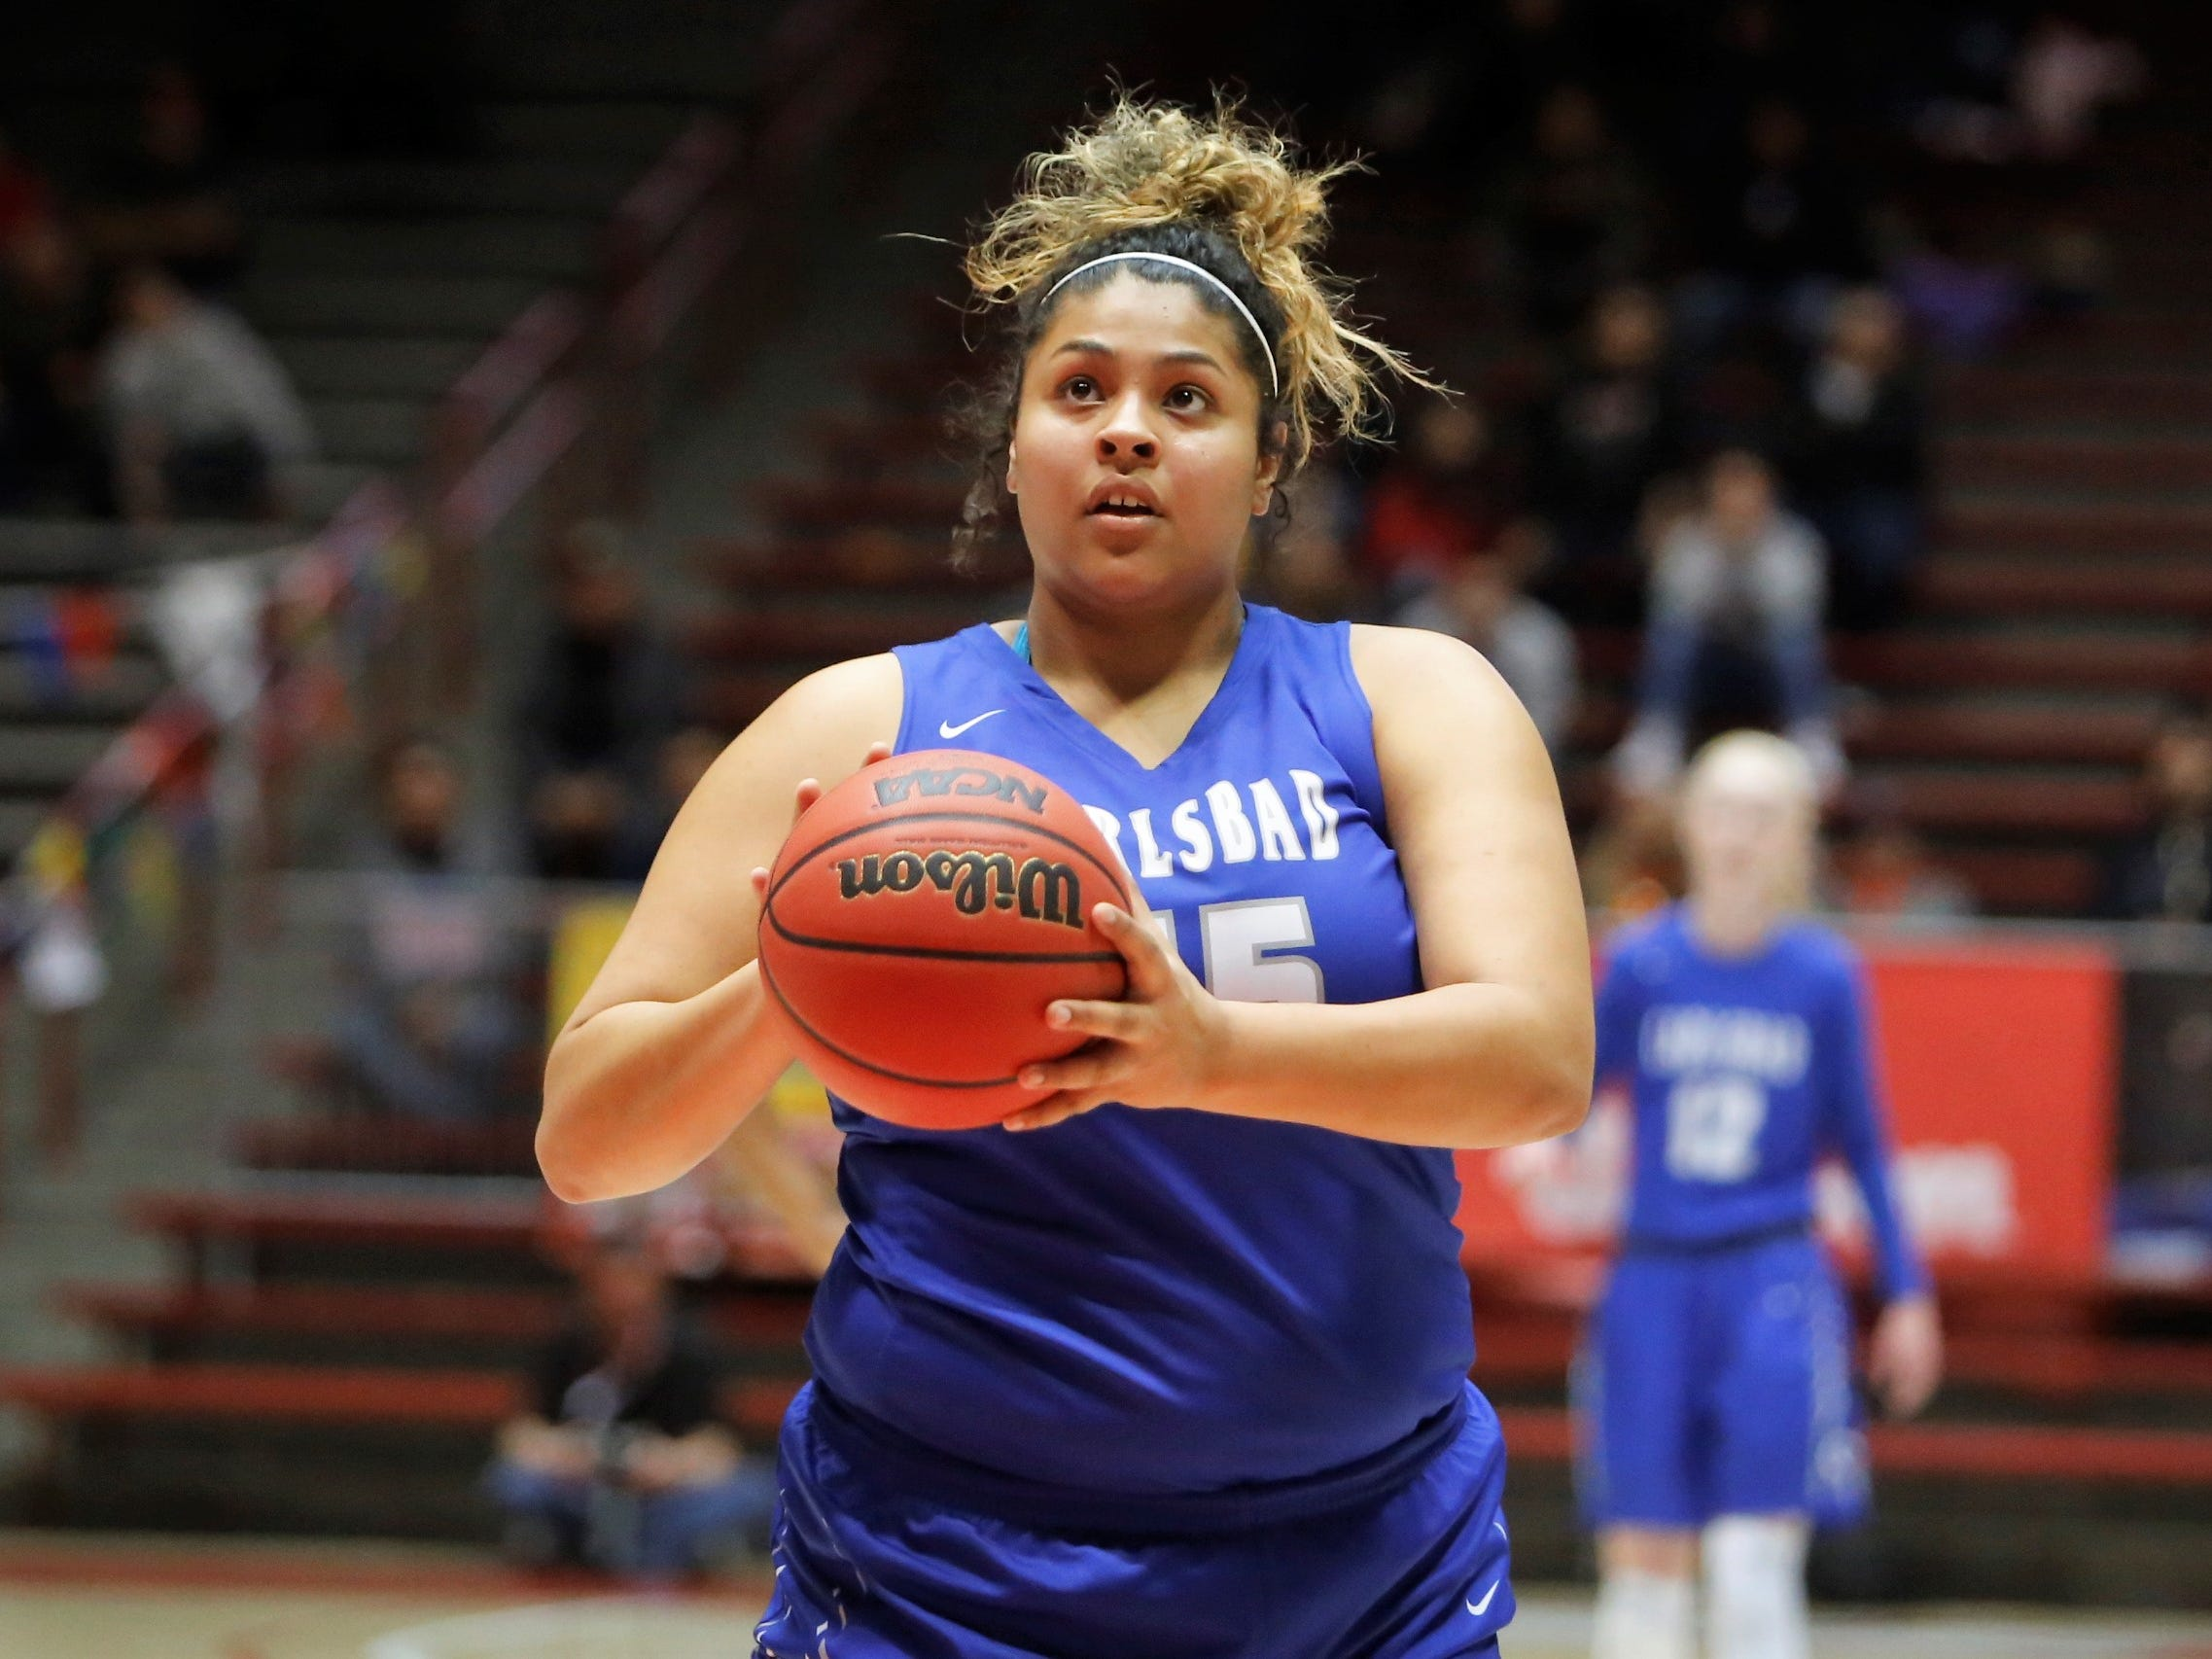 Carlsbad's Kaliyah Montoya shoots a free throw against Hobbs during Thursday's 5A state semifinals at Dreamstyle Arena in Albuquerque.